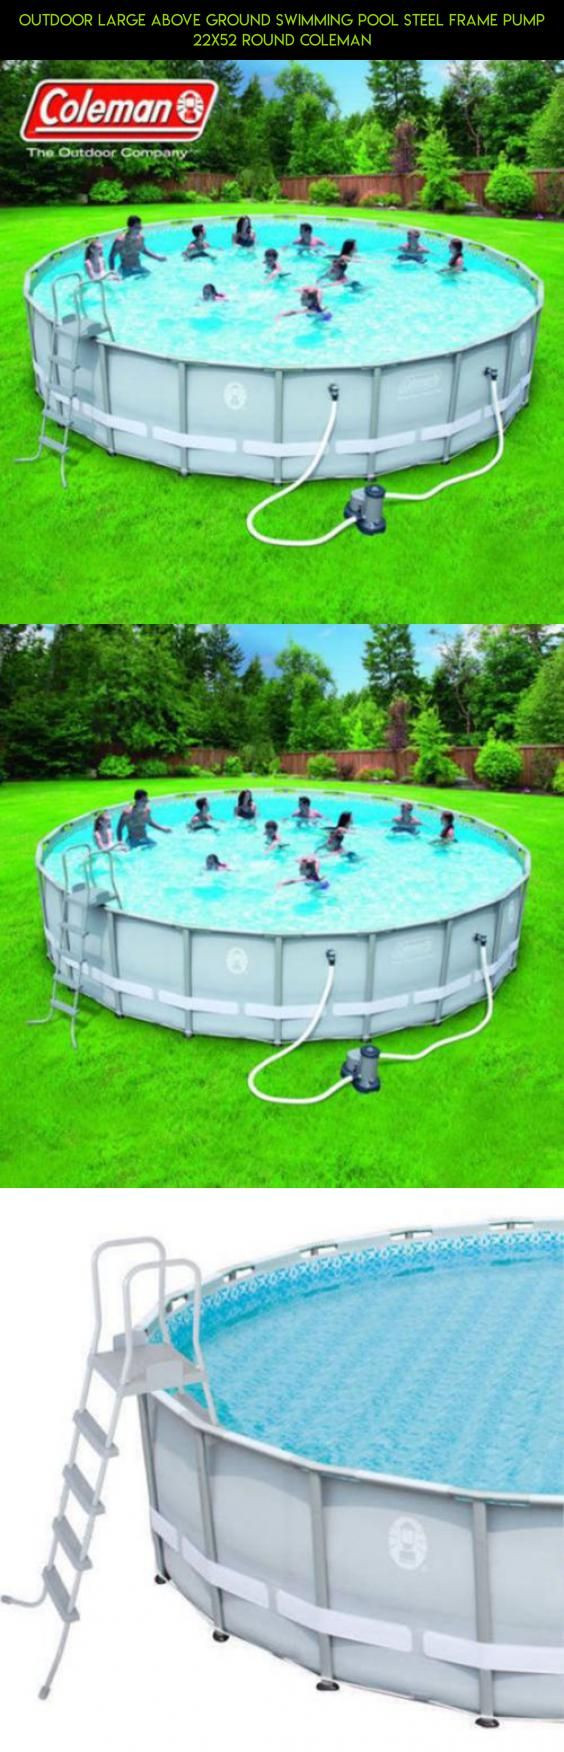 Best ideas about Coleman Above Ground Pool Parts . Save or Pin 25 best ideas about ground pool pumps on Pinterest Now.